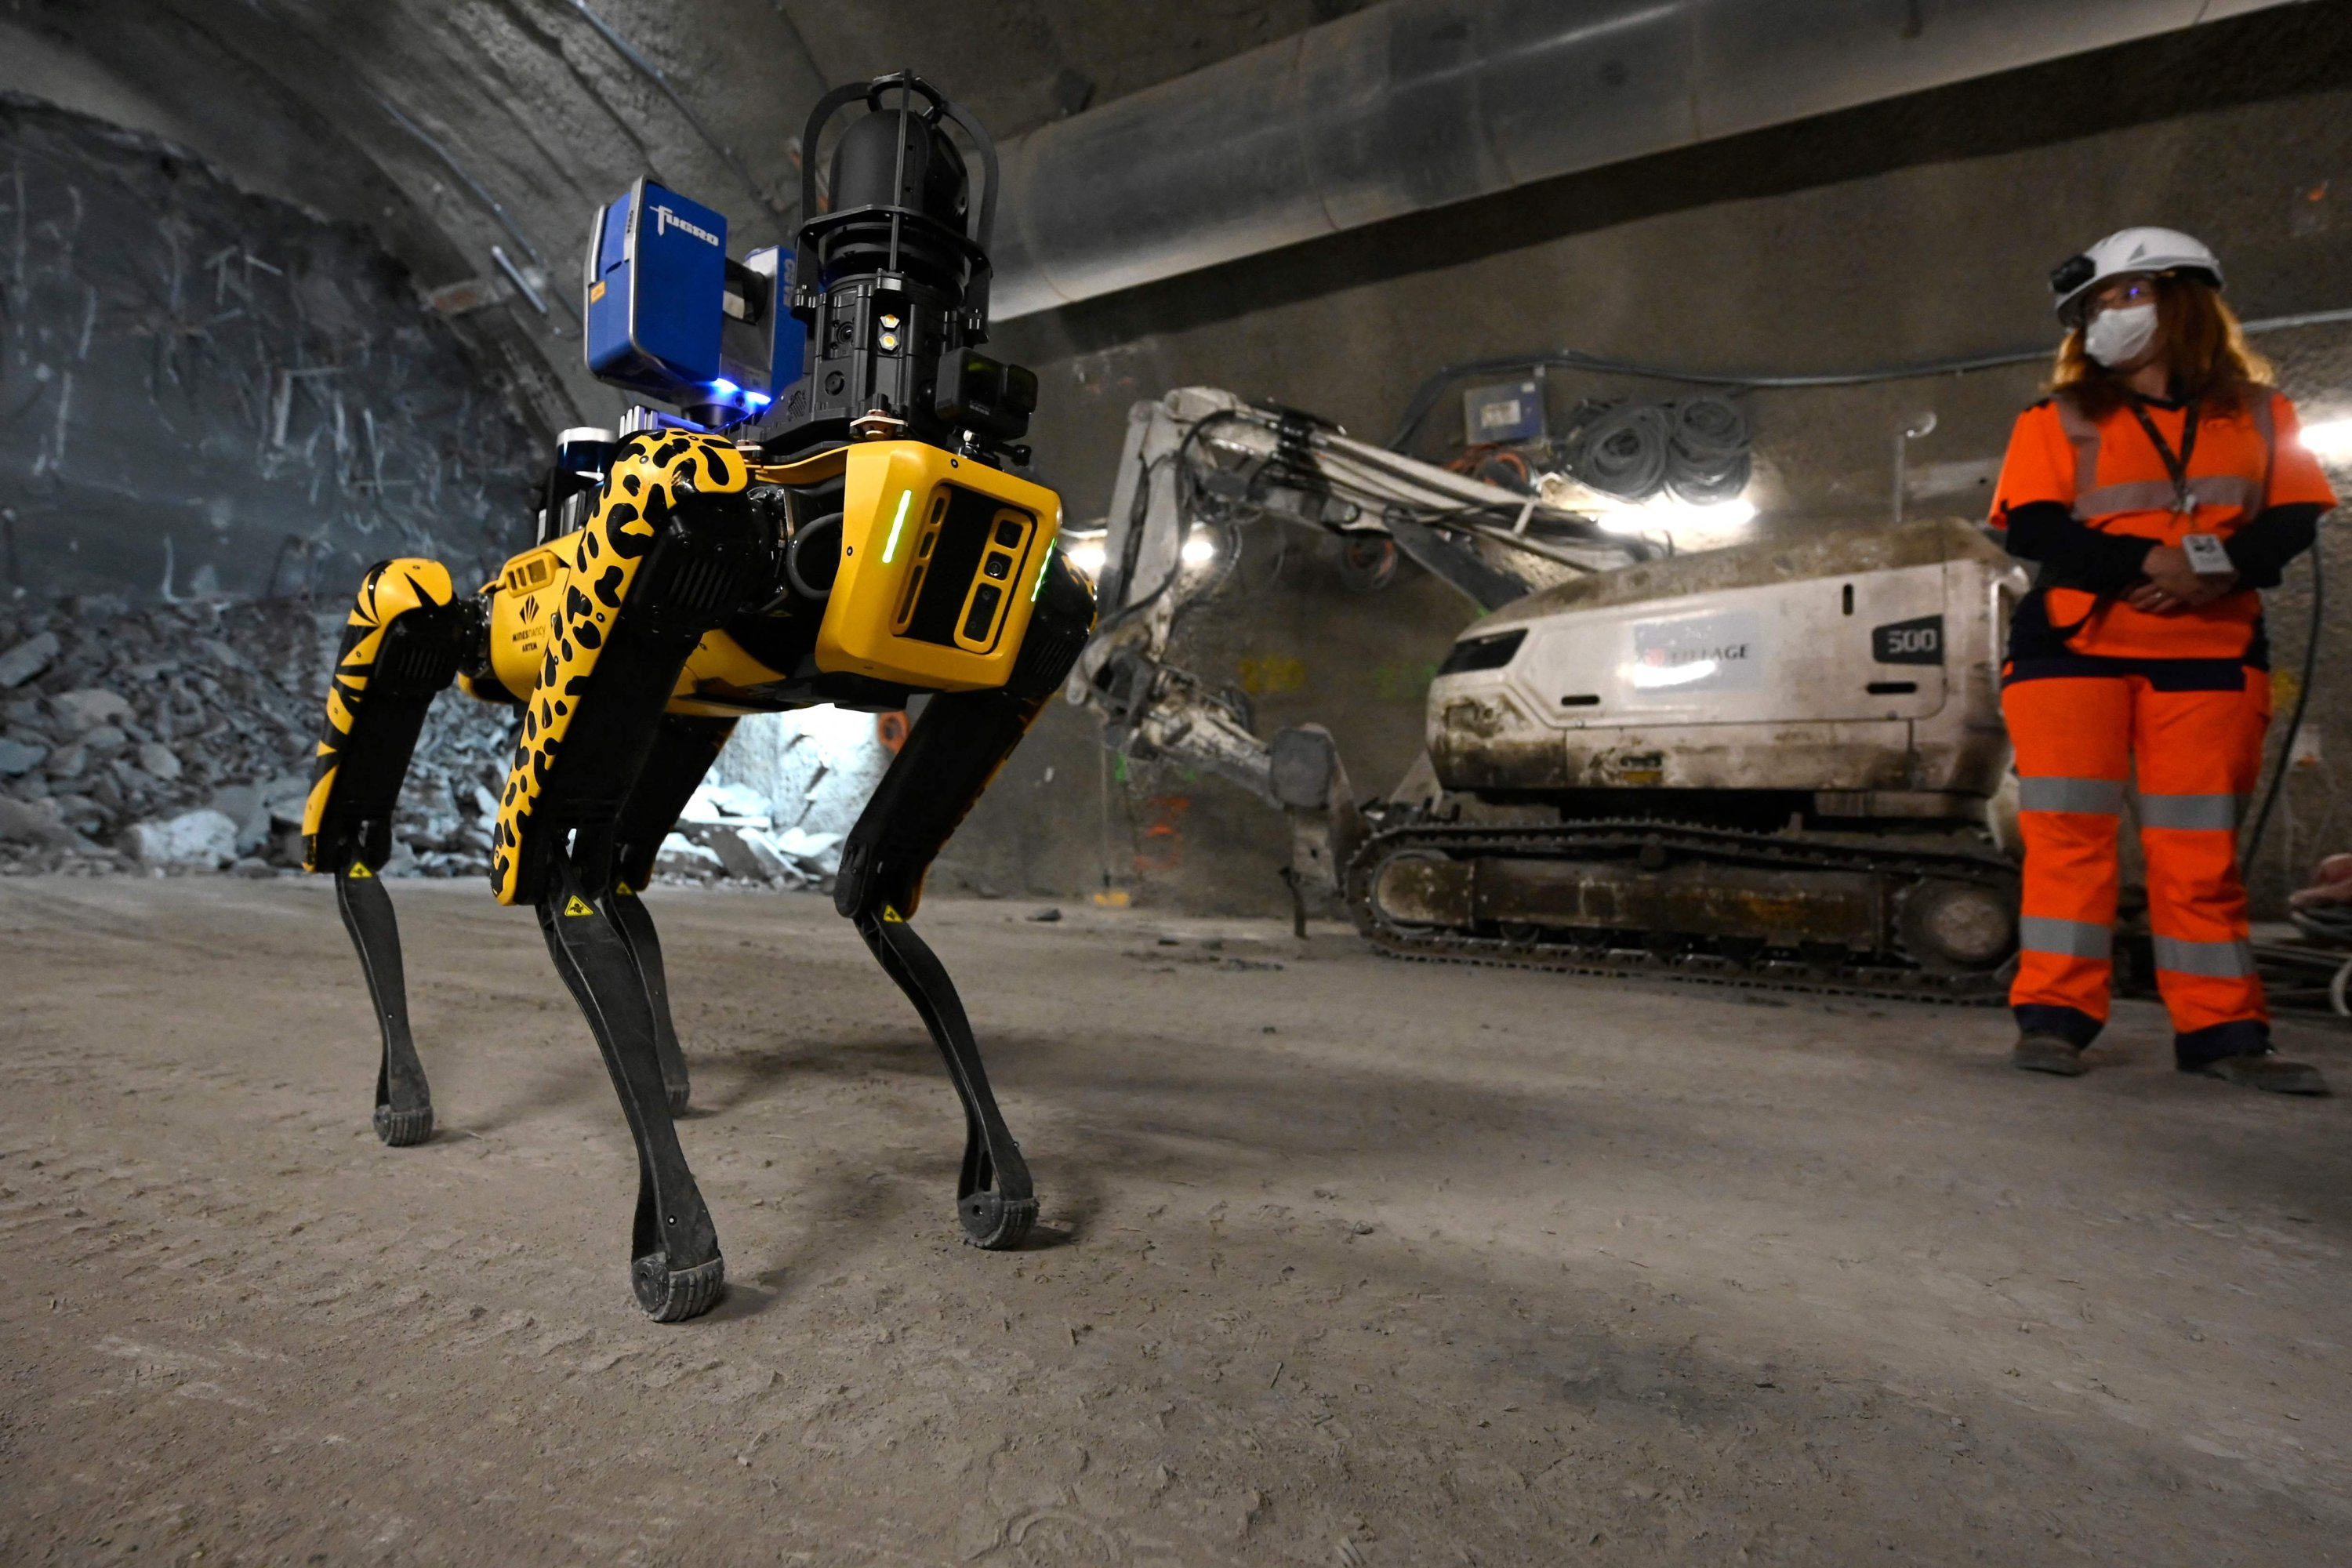 A researcher watches Scar, the robotic dog, in the underground laboratory at Bure, near Nancy, eastern France, May 11, 2021. (AFP)